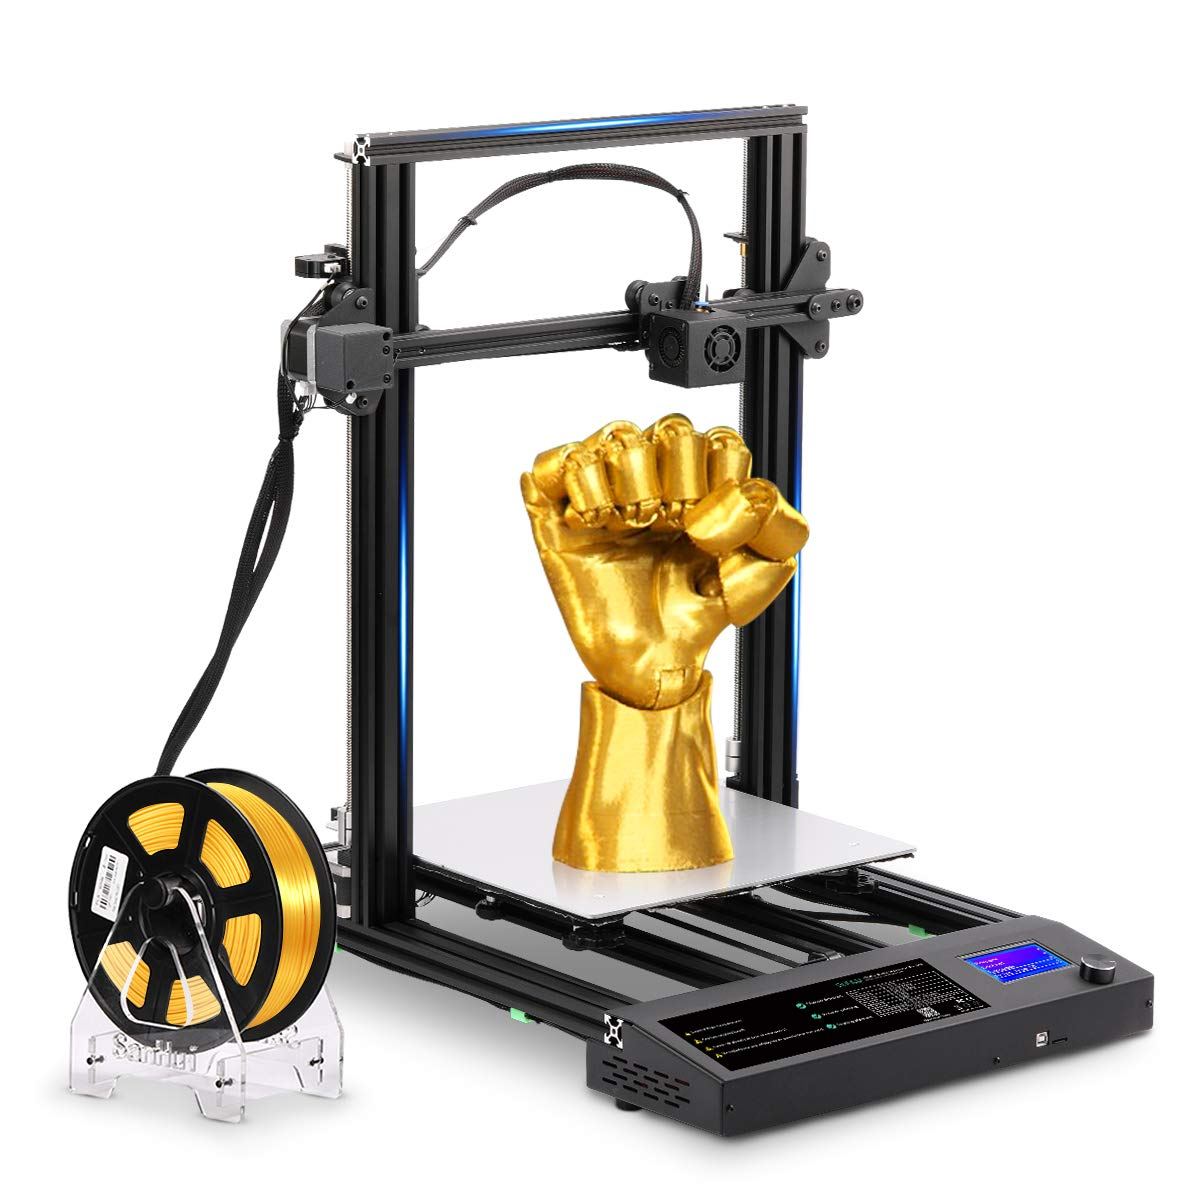 deal on large format #3dprinter  (same from sale last week, but that price ended a couple of days ago) @SUNLU_3D  #3dprinting  now $269 using new 25% off promo code at checkout: 25MORD2V